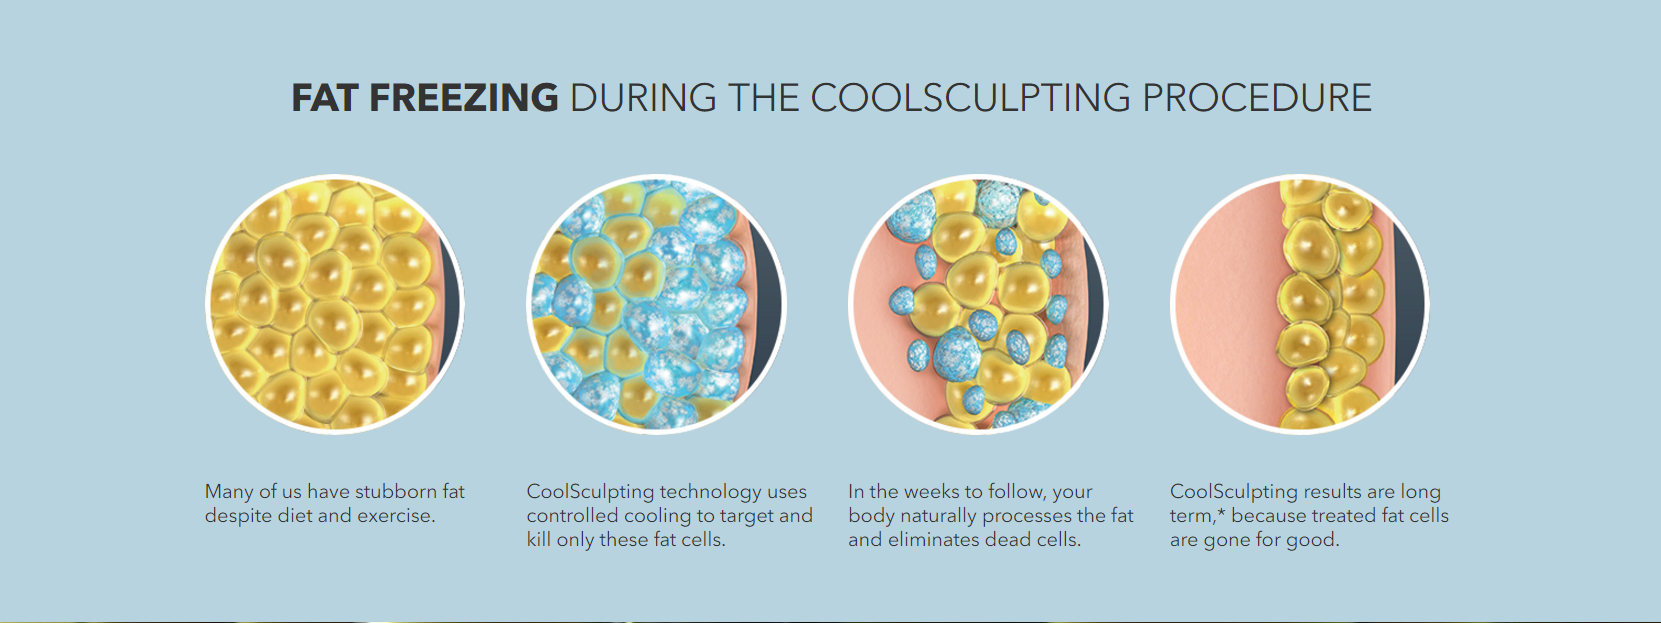 *Image courtesy of coolsculpting.com